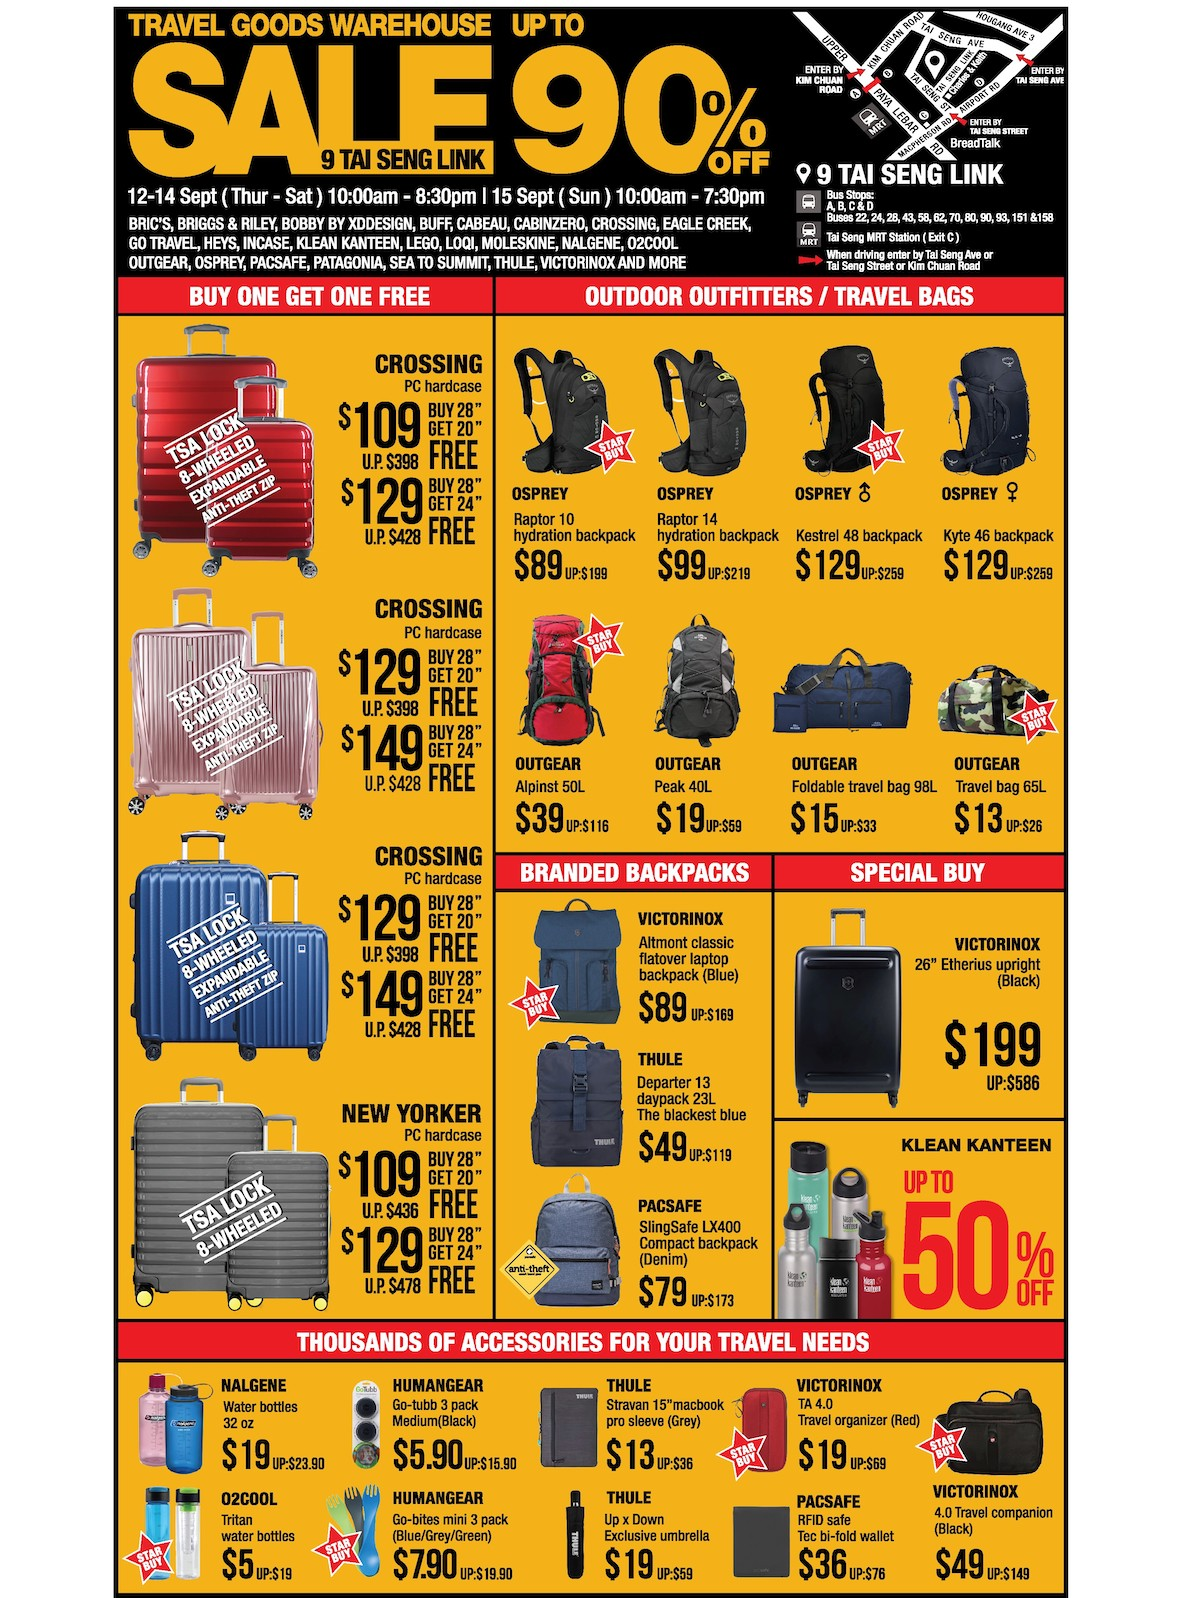 The Planet Traveller Singapore Warehouse Sales Up to 90% Off Promotion 12-15 Sep 2019 | Why Not Deals & Promotions